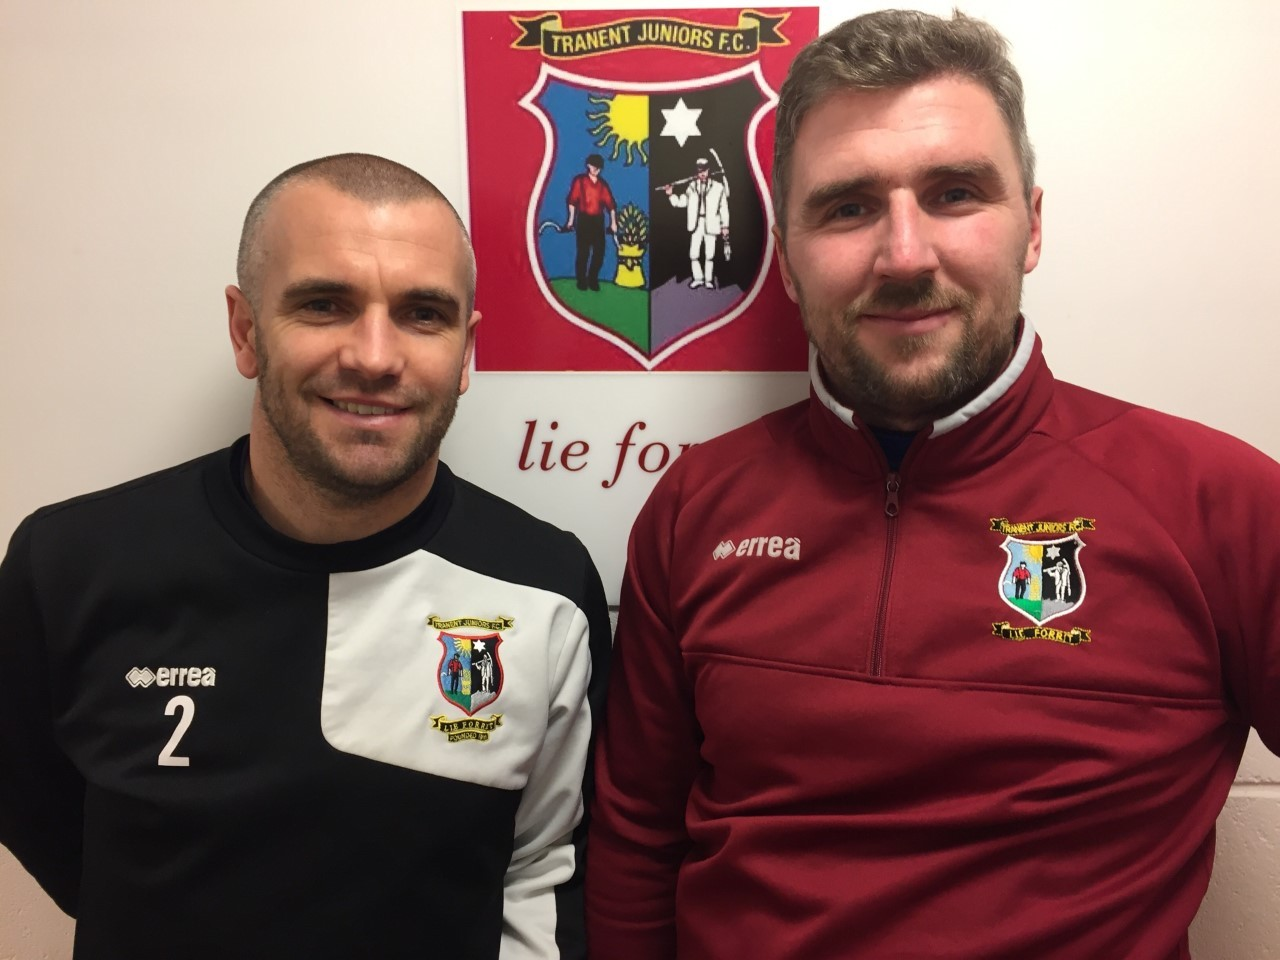 Kenny Rafferty (right) and Darren Smith are the new managers of Tranent Juniors